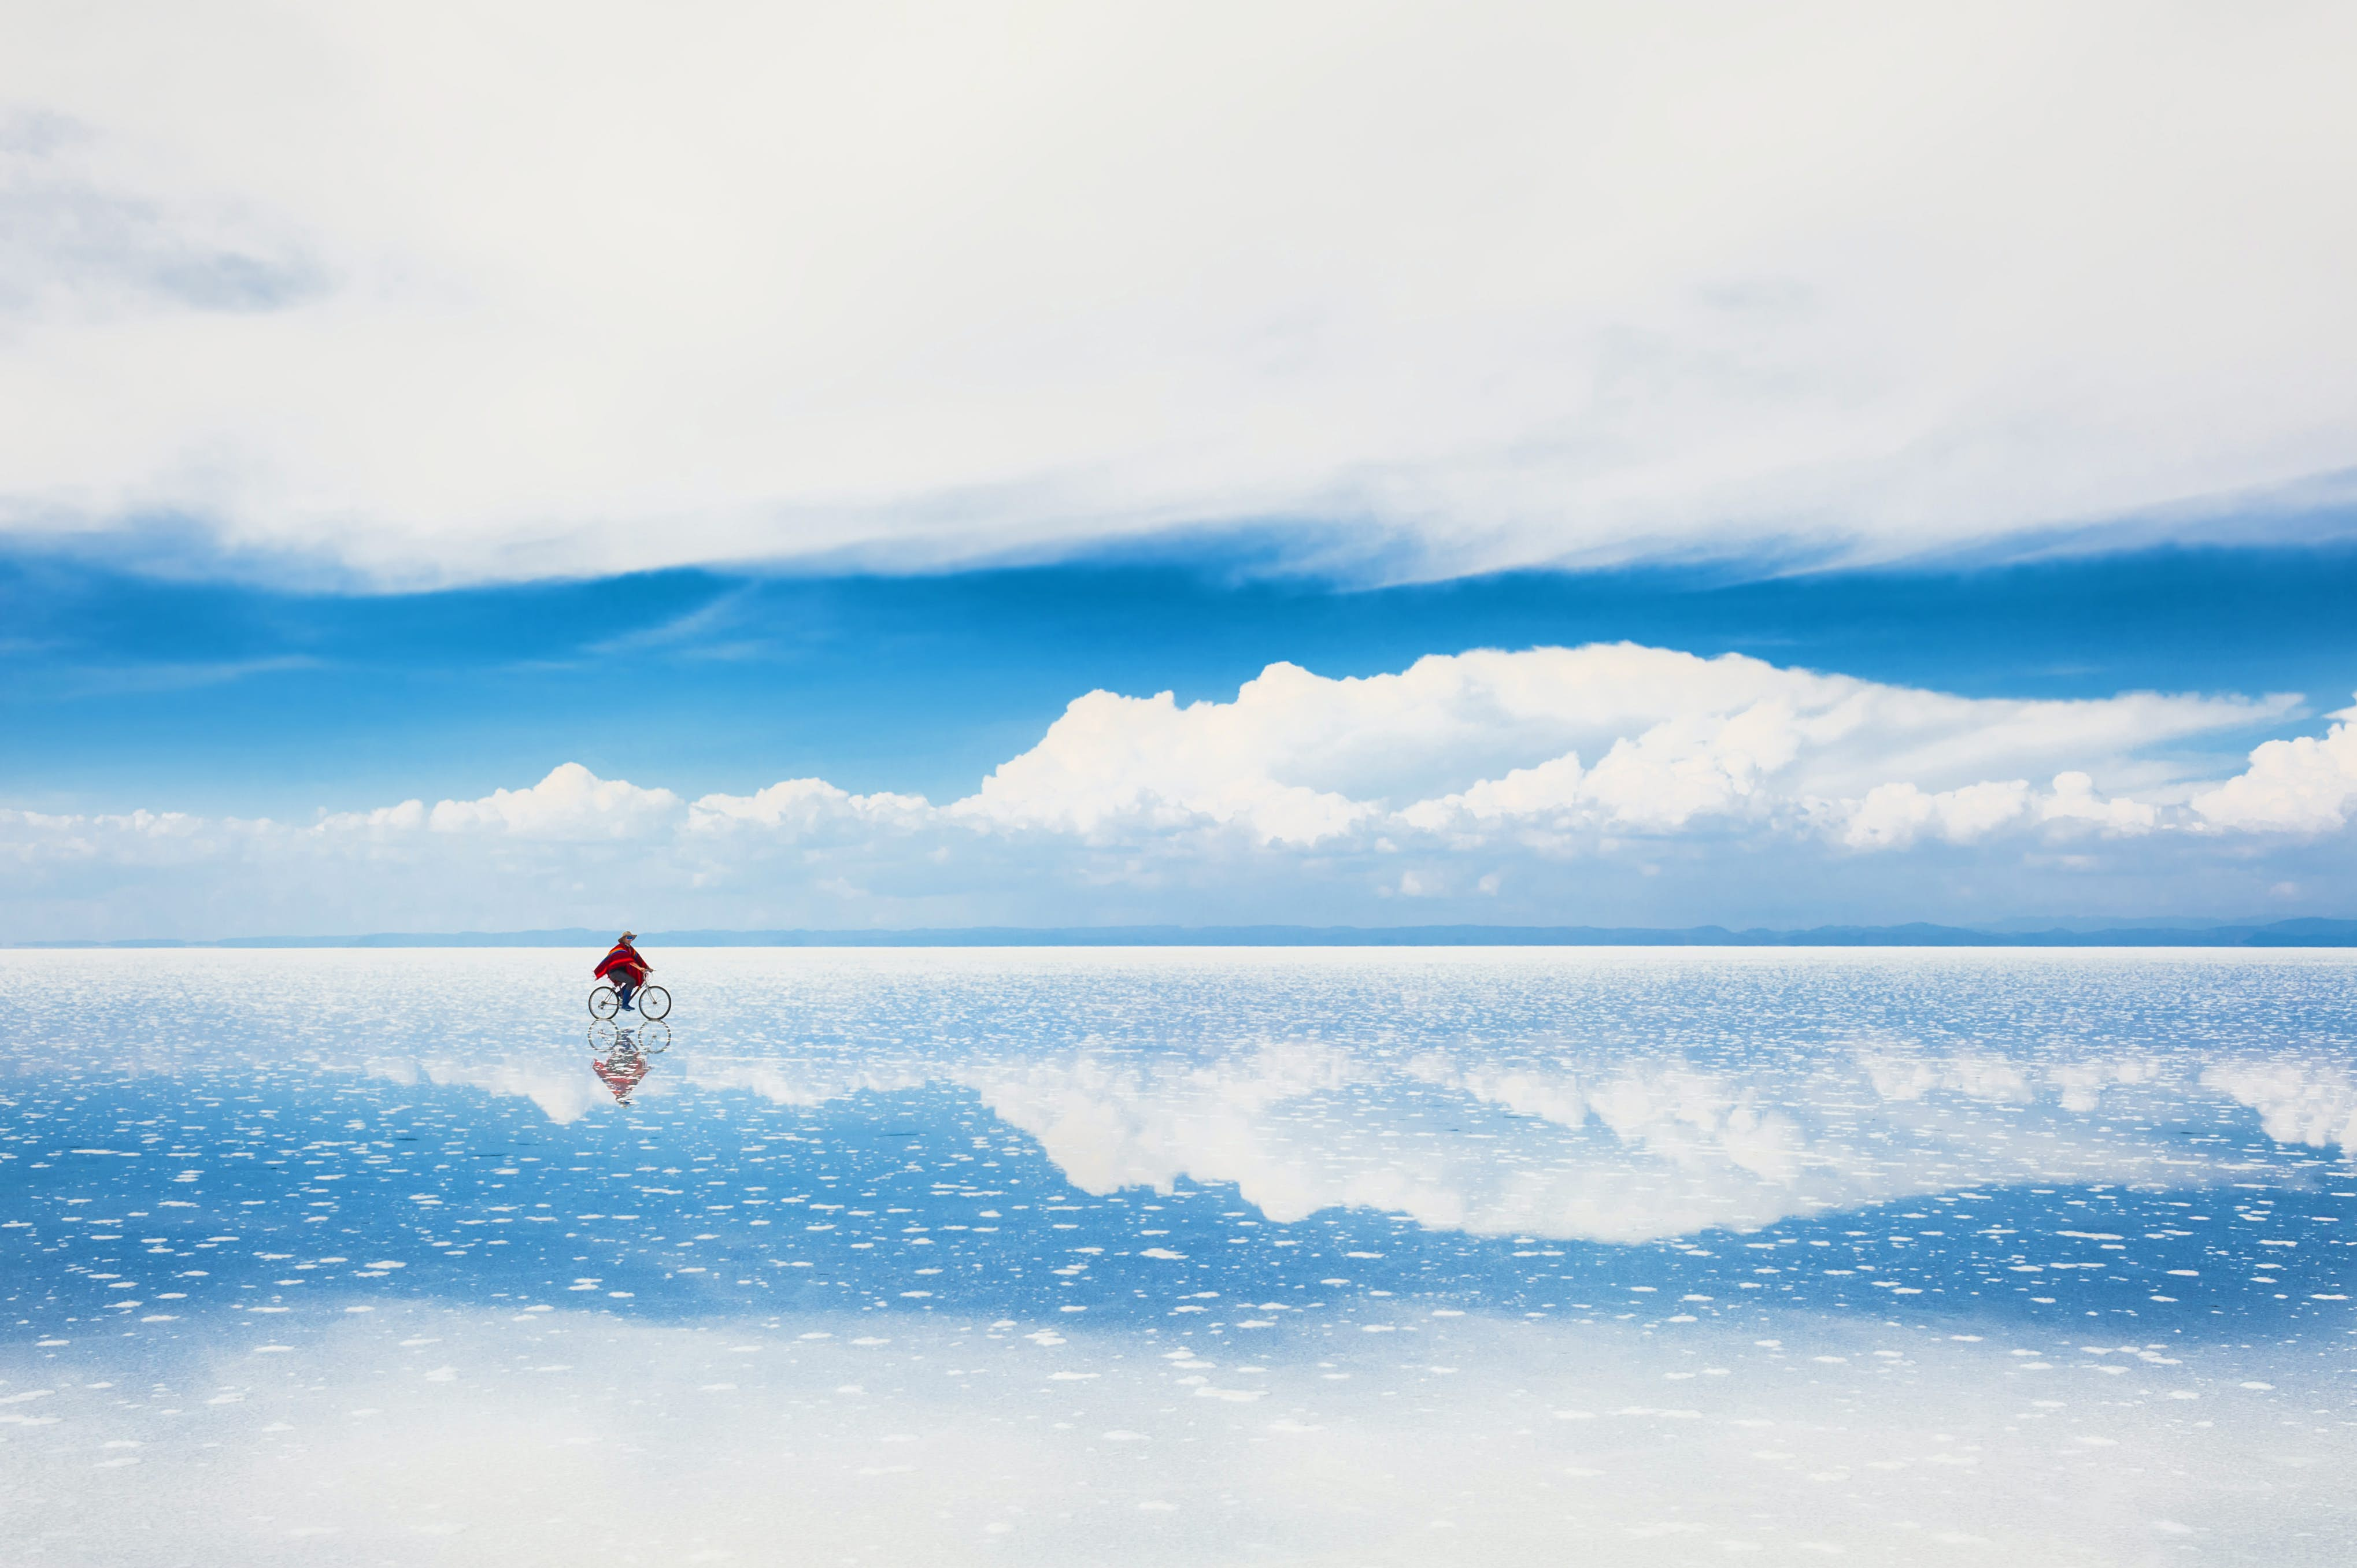 A lone cyclist rides across the Salar De Uyuni salt flats in Bolivia. The rider's image, and the blue sky above him, is reflected in the white, salty ground.